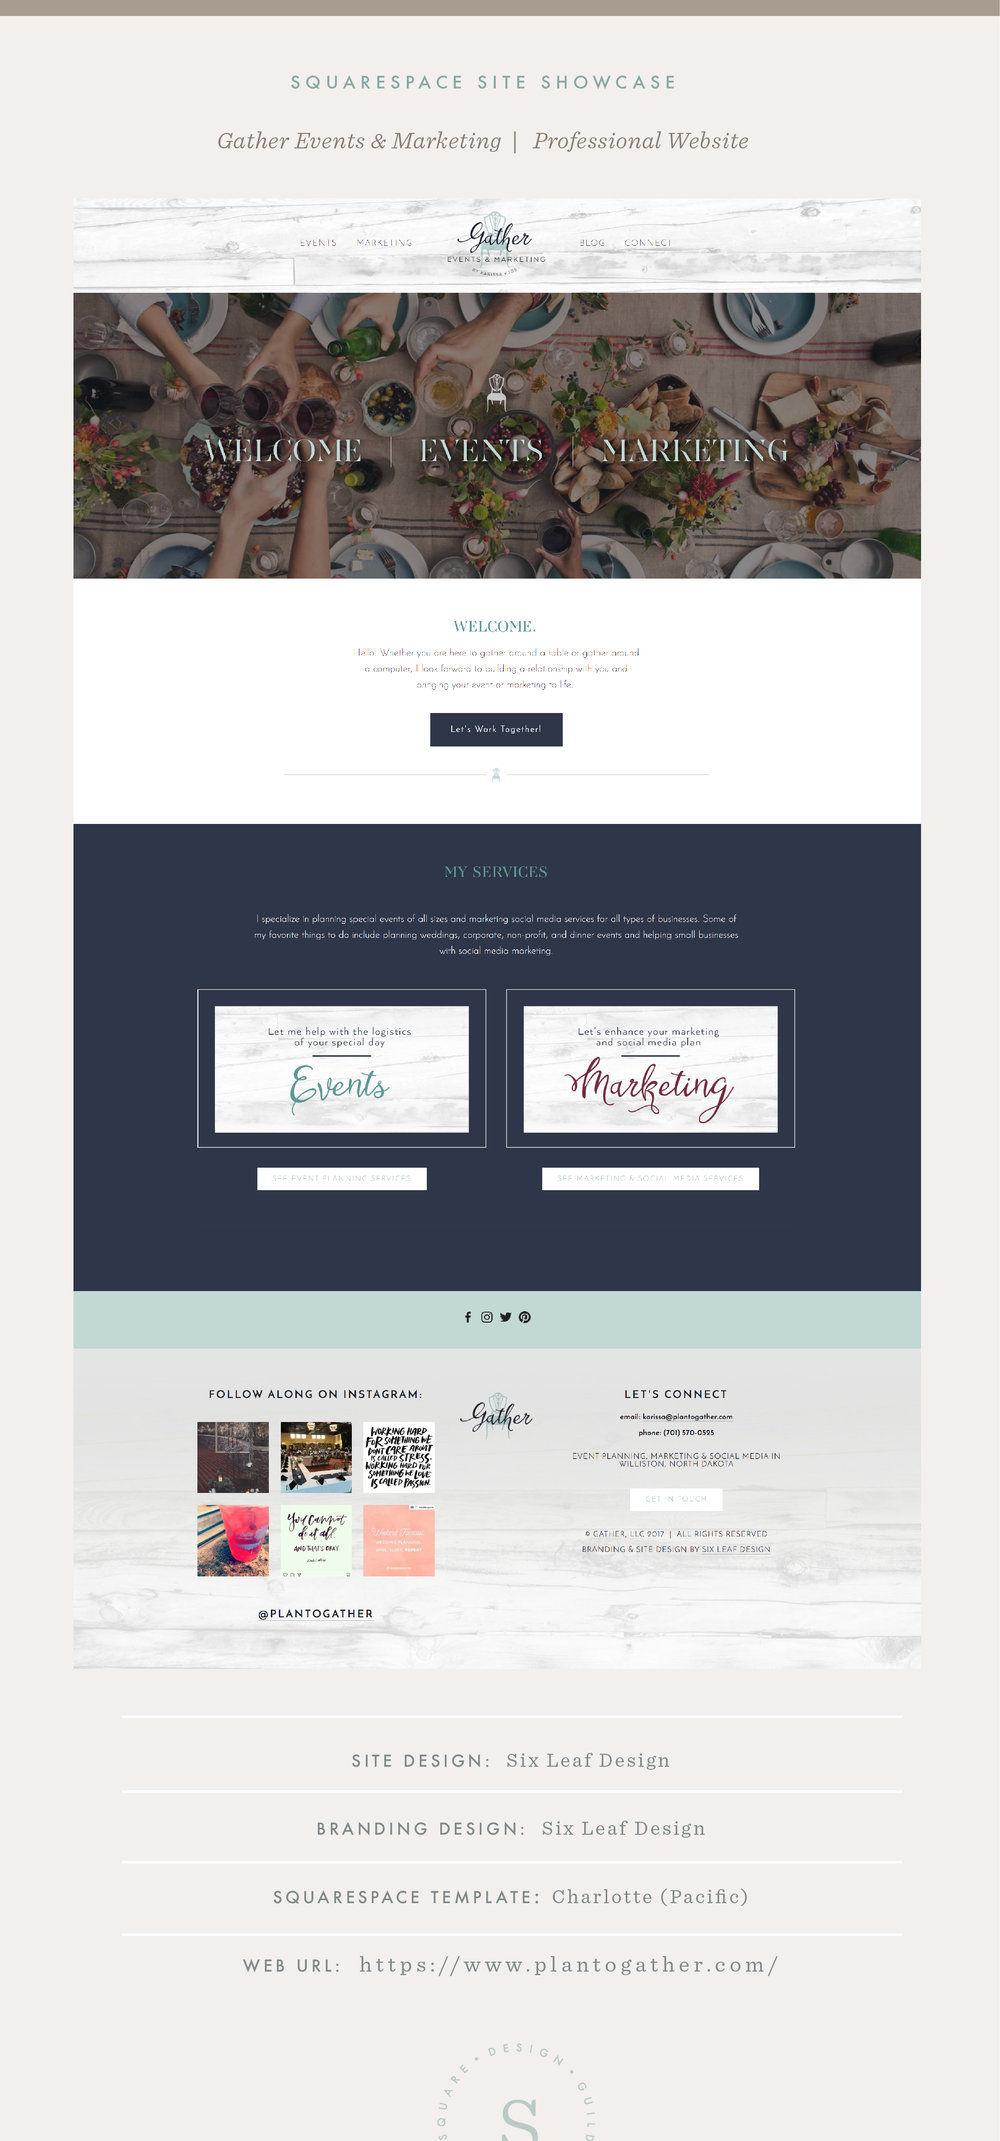 Squarespace Site Showcase | Gather Events & Marketing| Pacific Template | Six Leaf Design